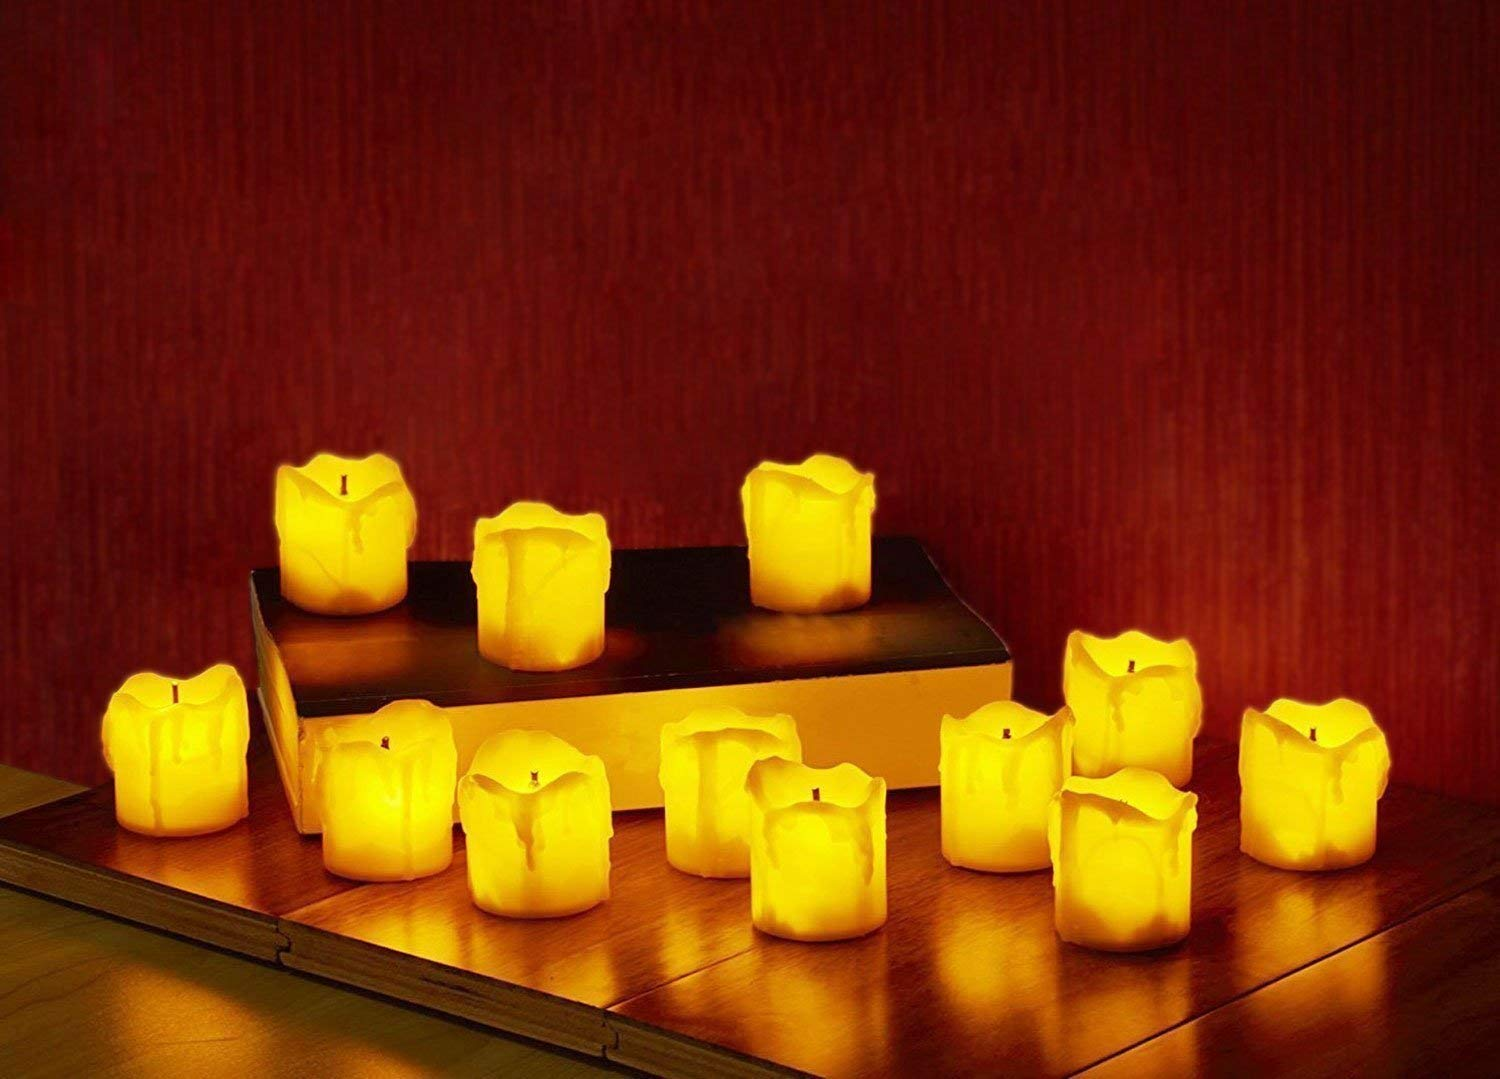 LED Flameless Votive Candles, Realistic Look of The Melted Wax and Flickering Flame, Battery Powered, Perfect for Wedding, Party and Christmas Decorations [Pack of 12]